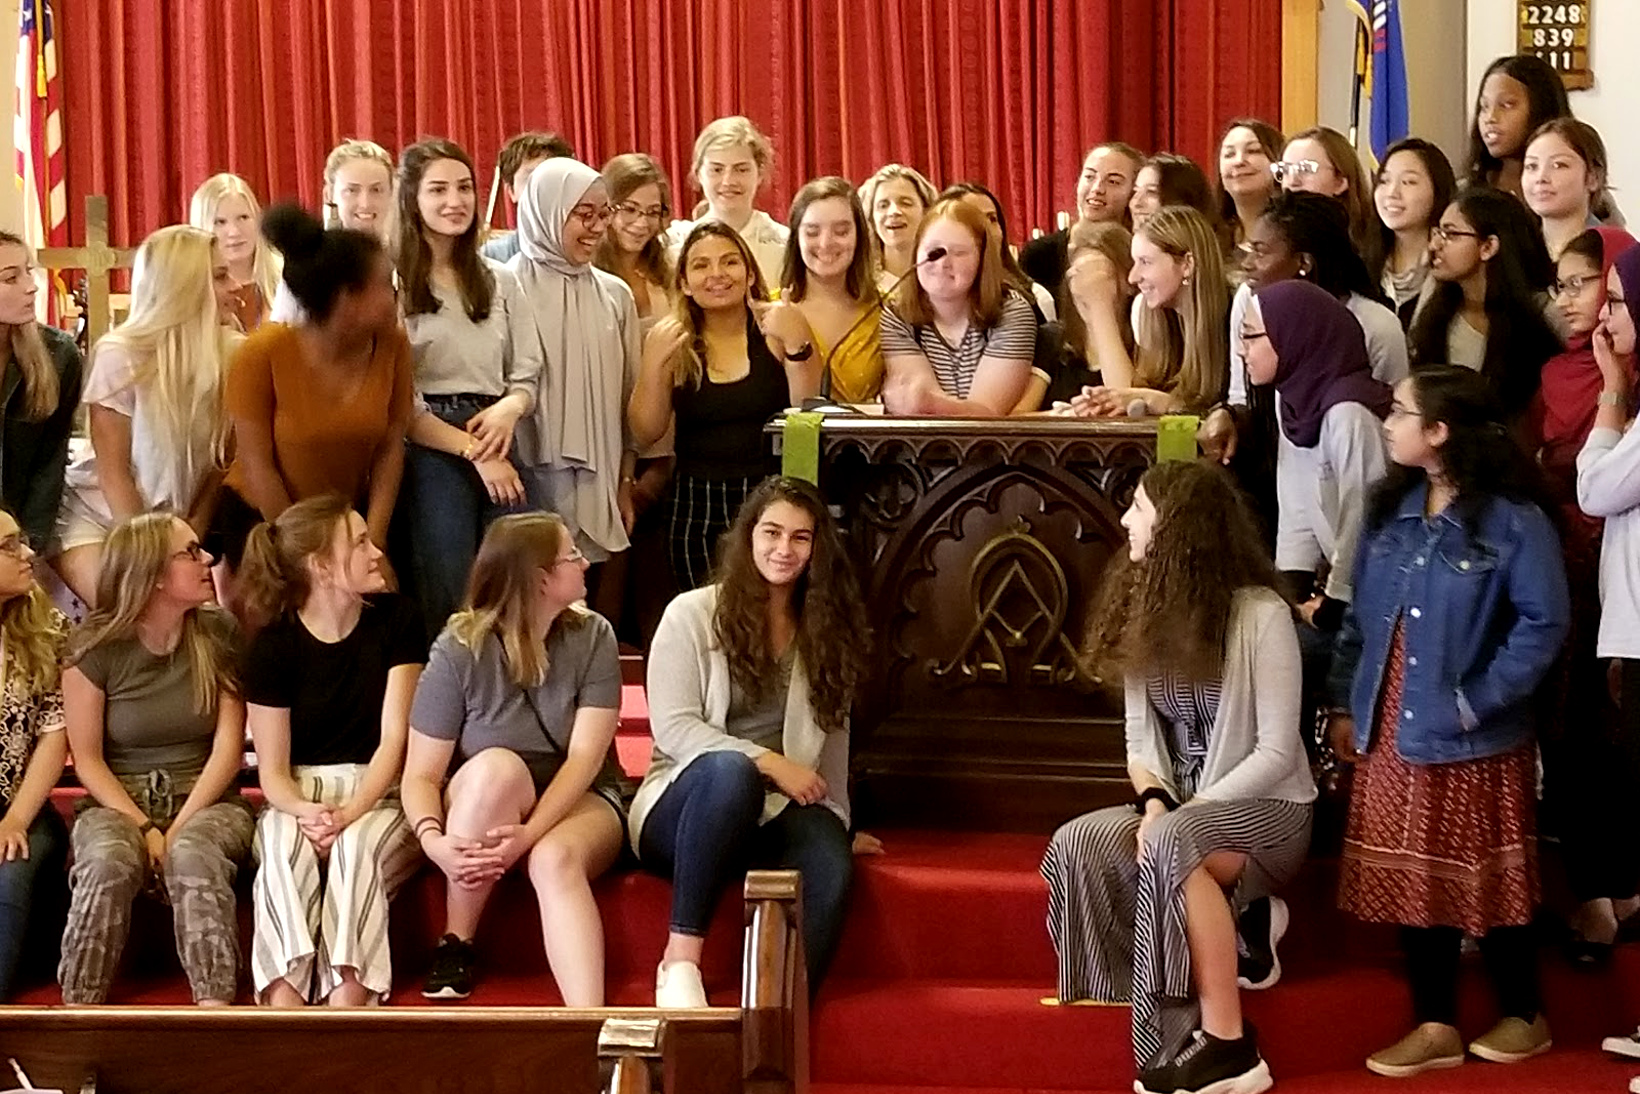 Groups of students pose near a pulpit that Alice Paul spoke from